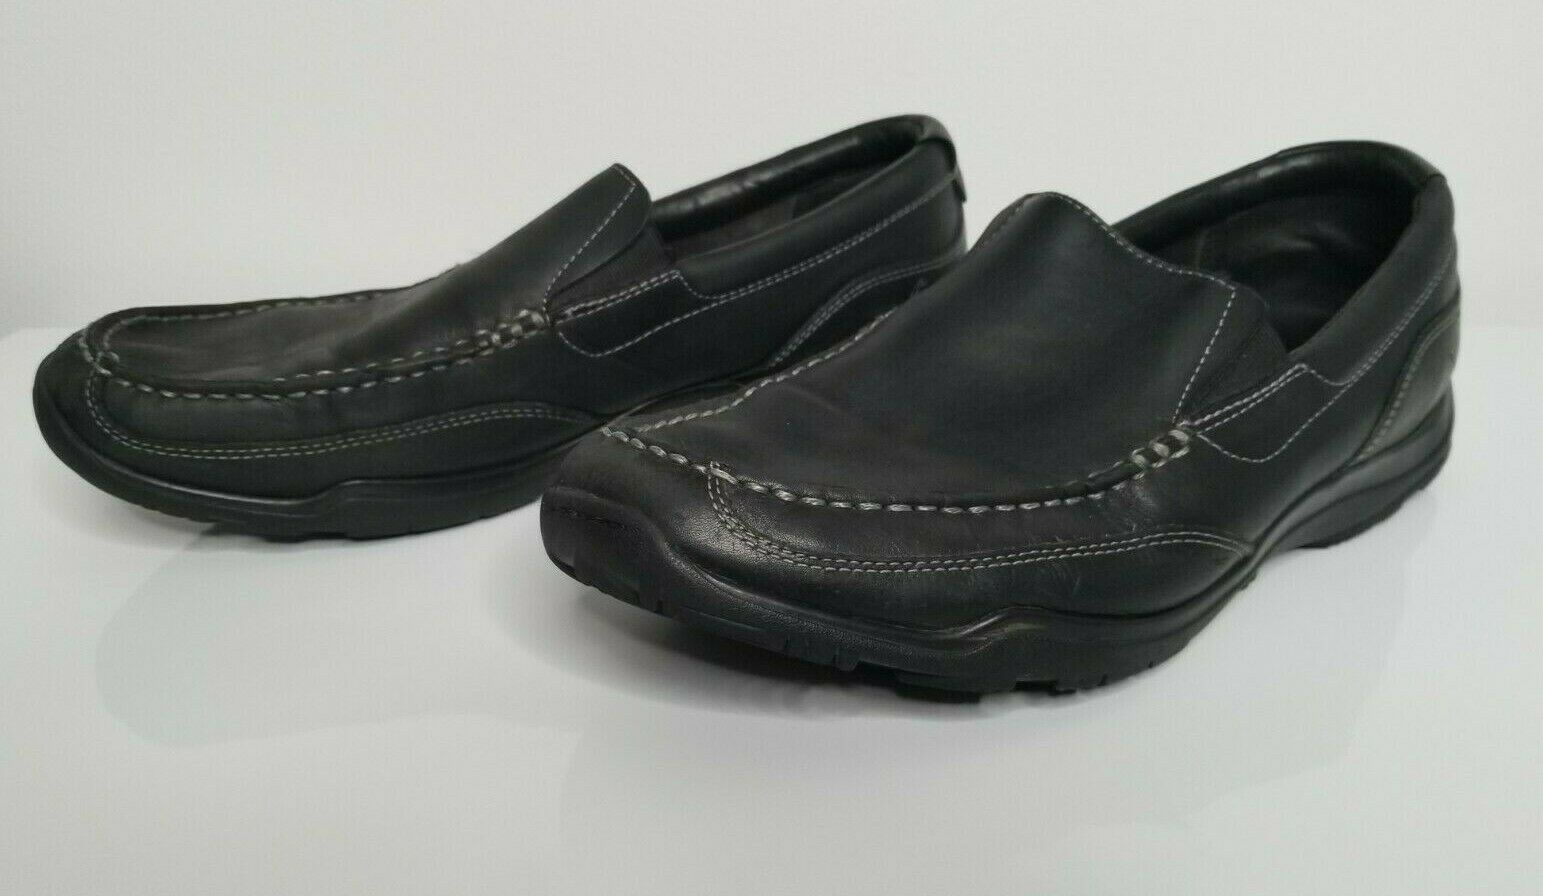 Primary image for Cole Haan Mens Hughes Grand Slip on Shoes Loafer Black Leather Size 12M C20243